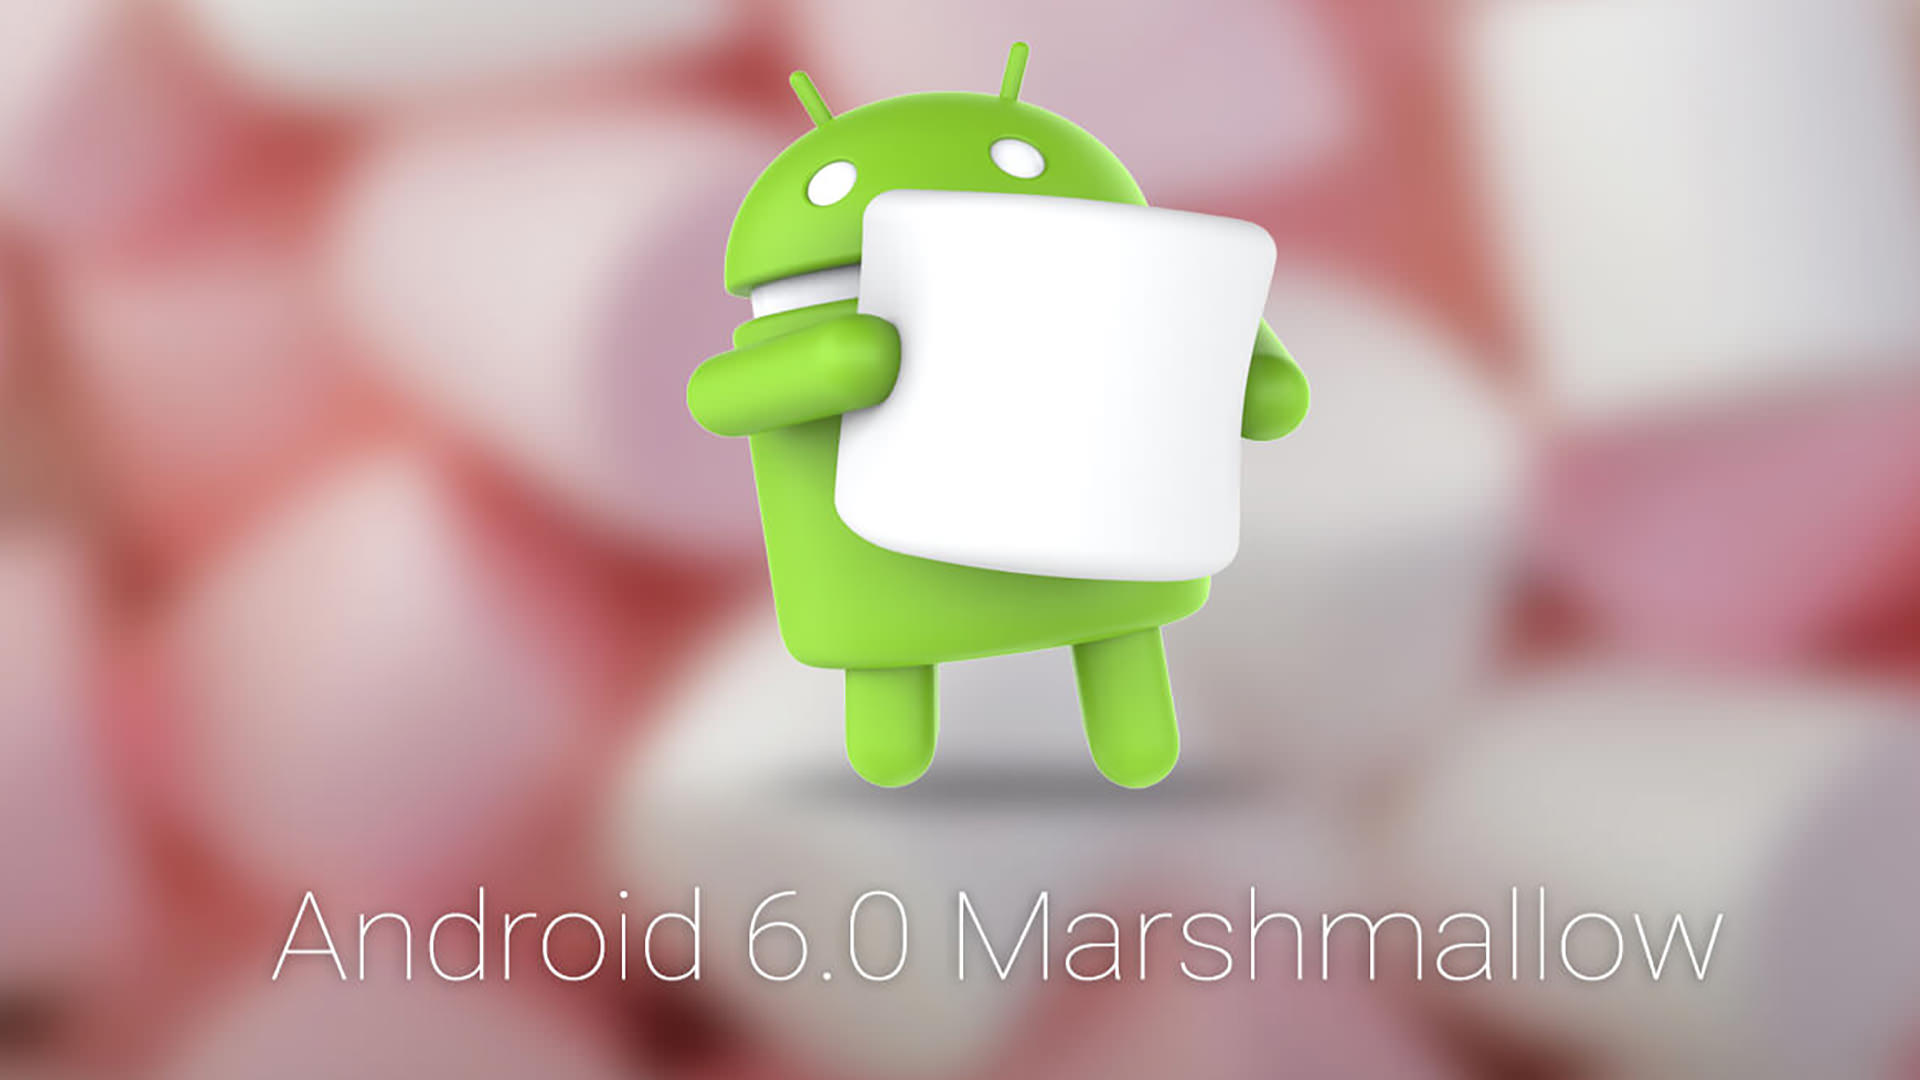 Android Marshmallow 2015 wallpapers 1920x1080